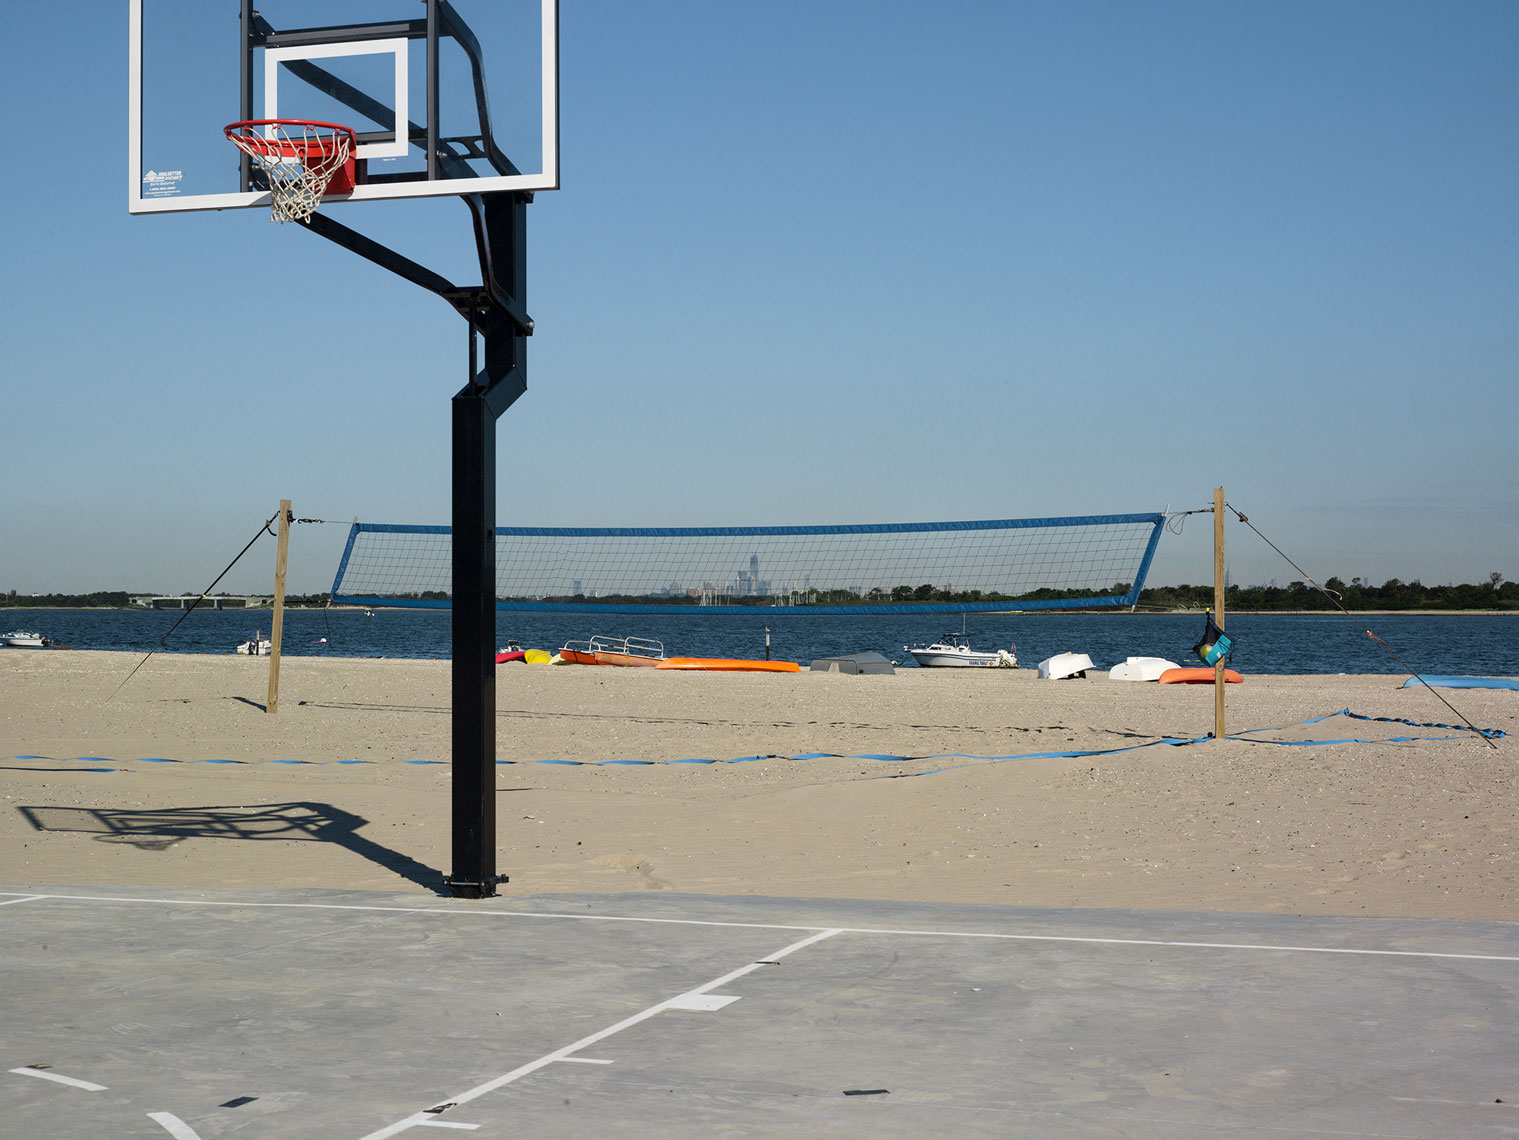 Sports on Rockaway Inlet, Queens, NY